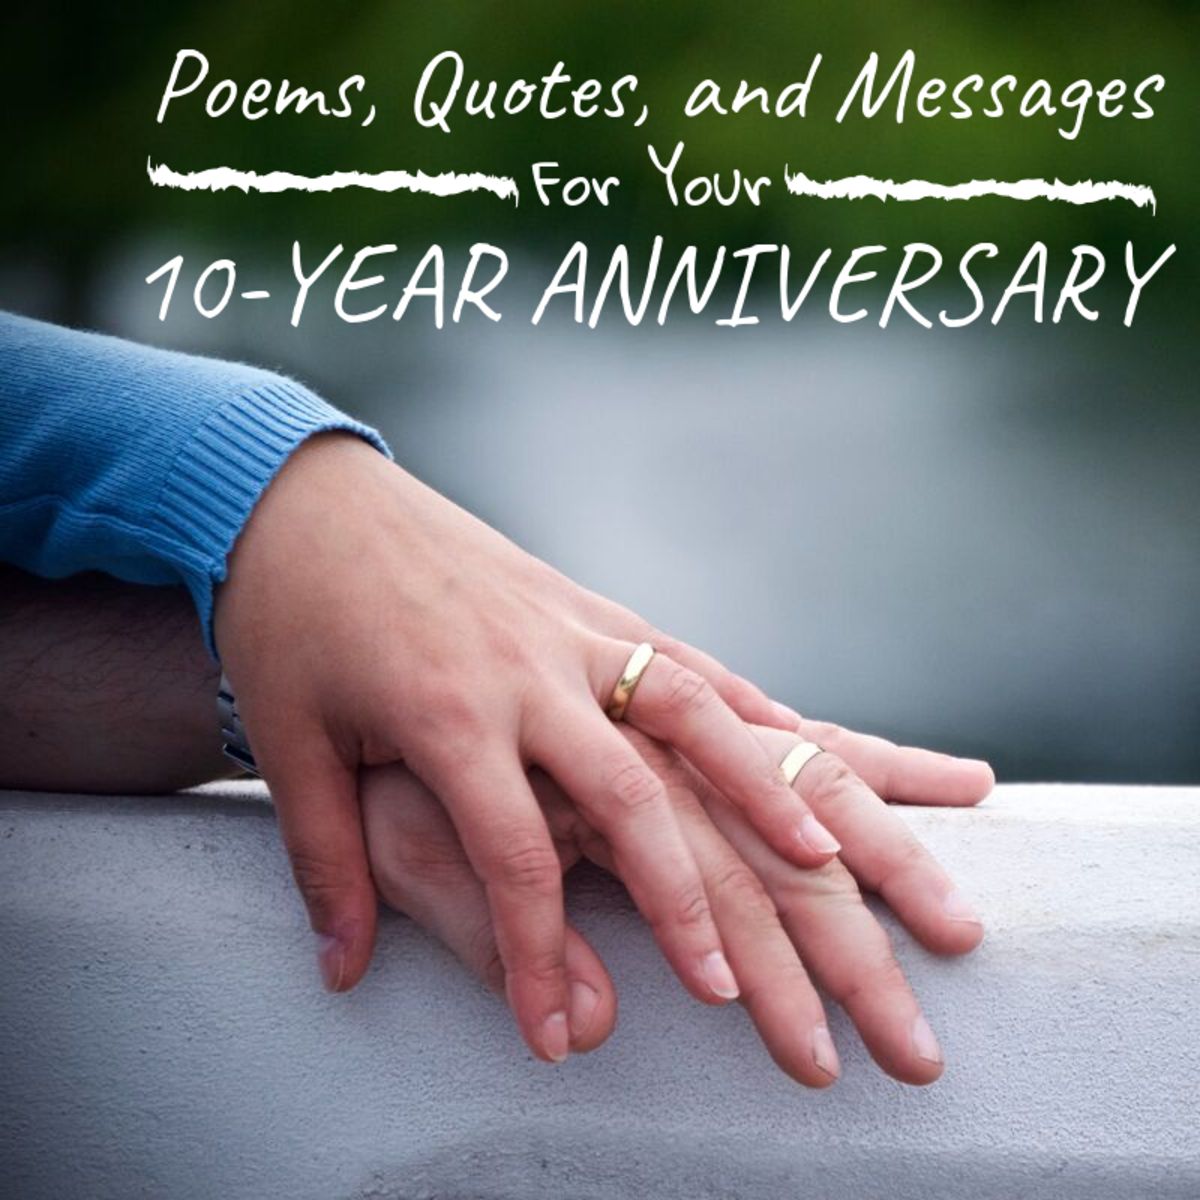 10th Anniversary Wishes Quotes And